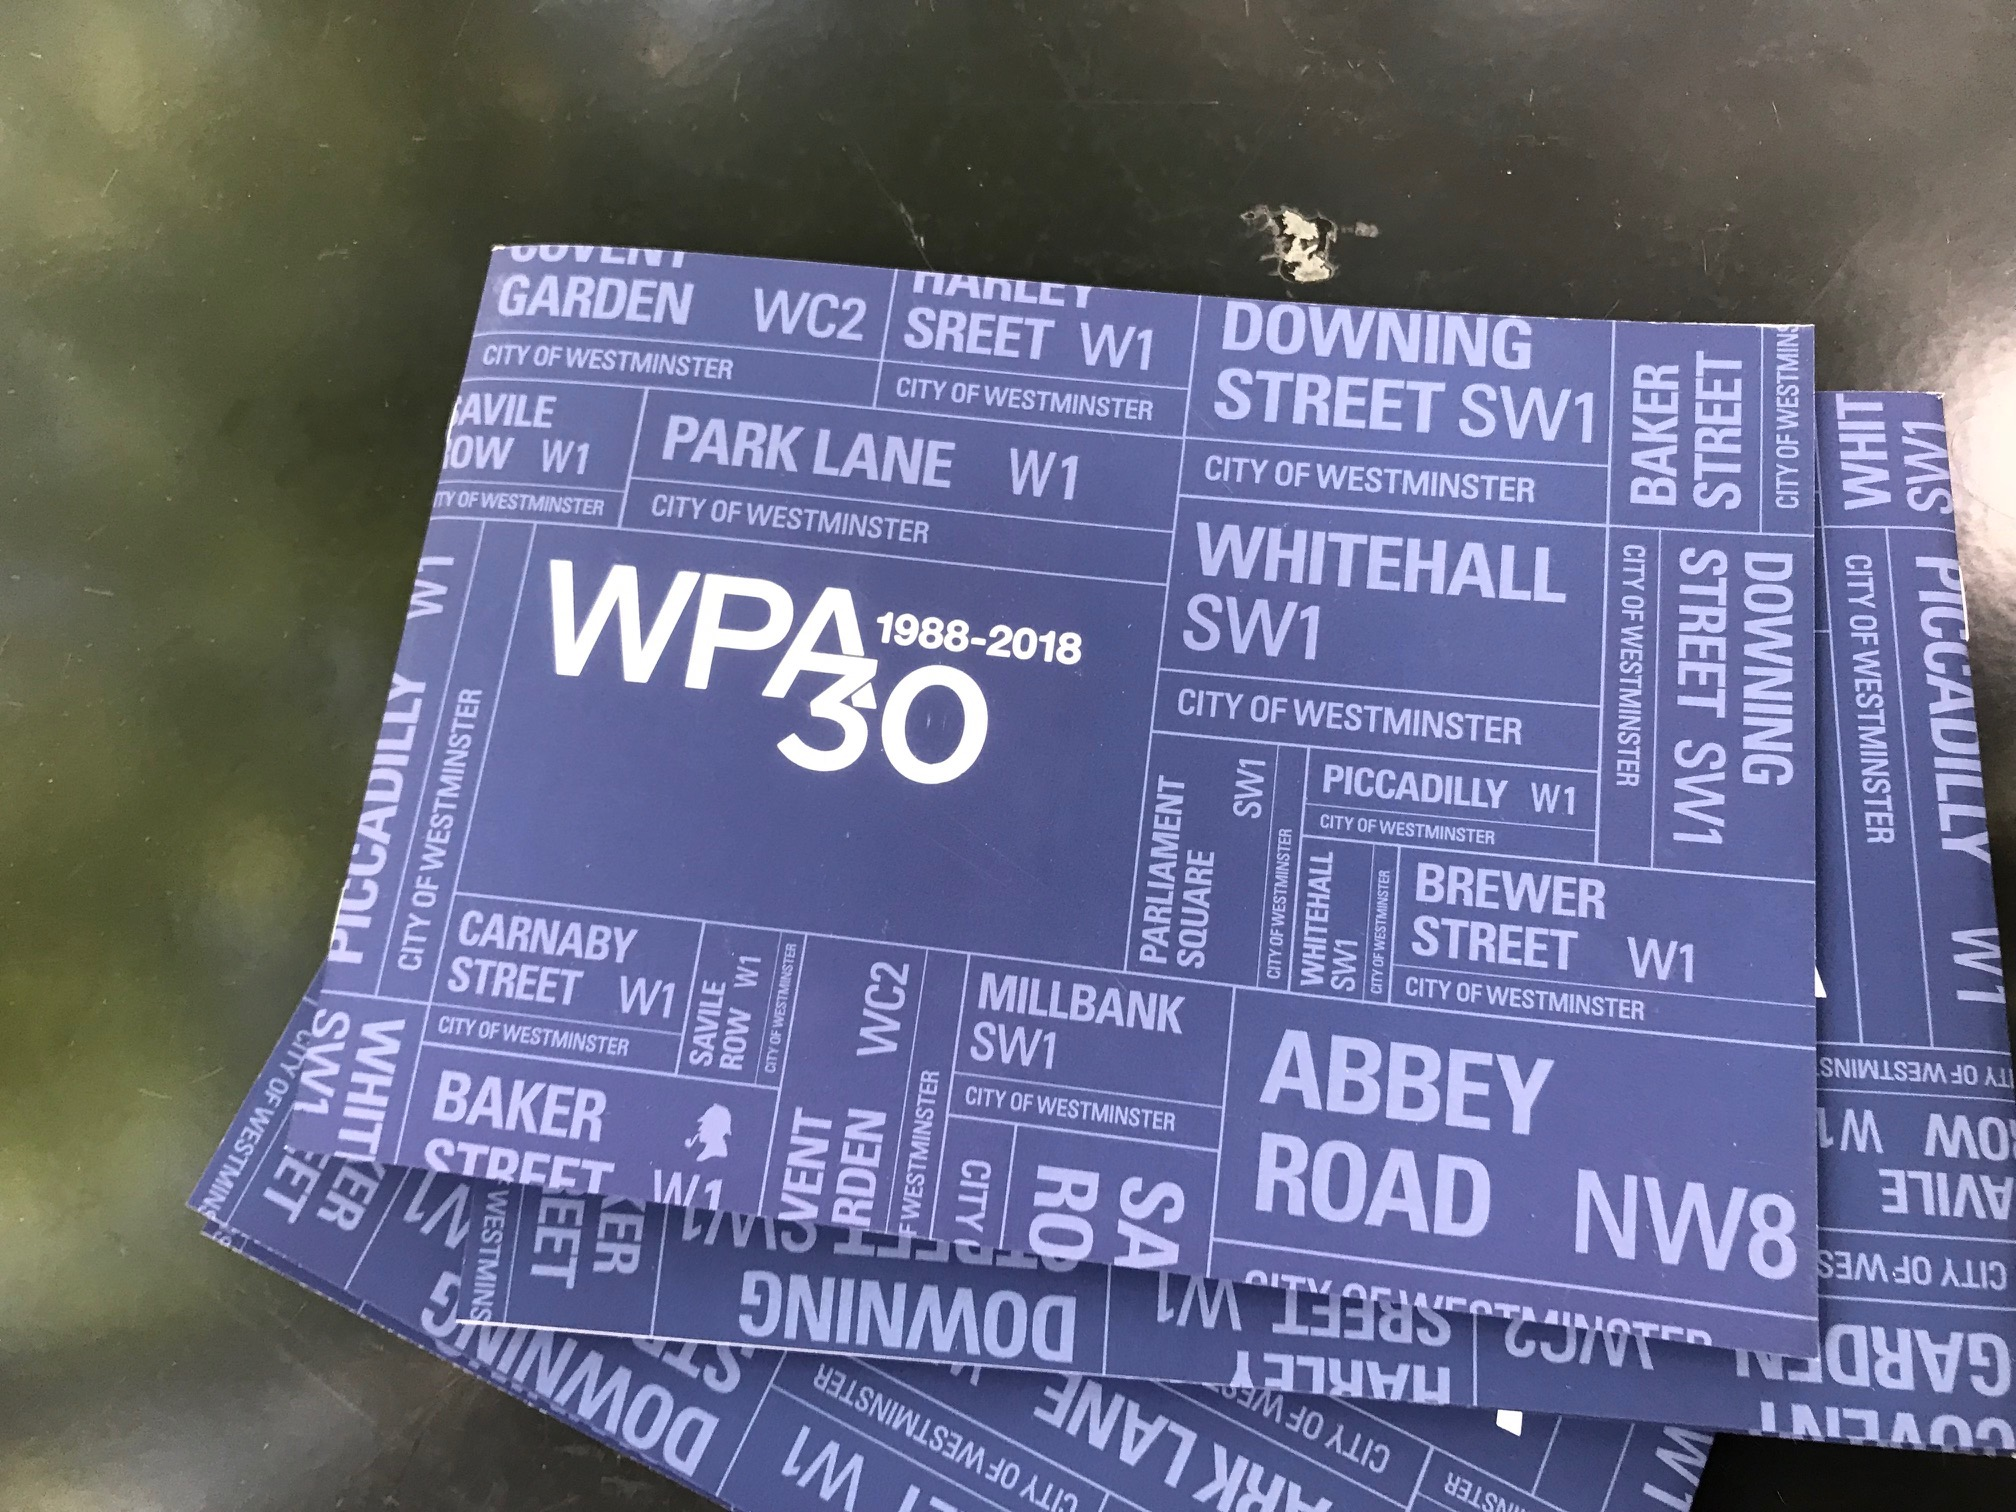 Westminster Property Association (WPA): 30th Anniversary